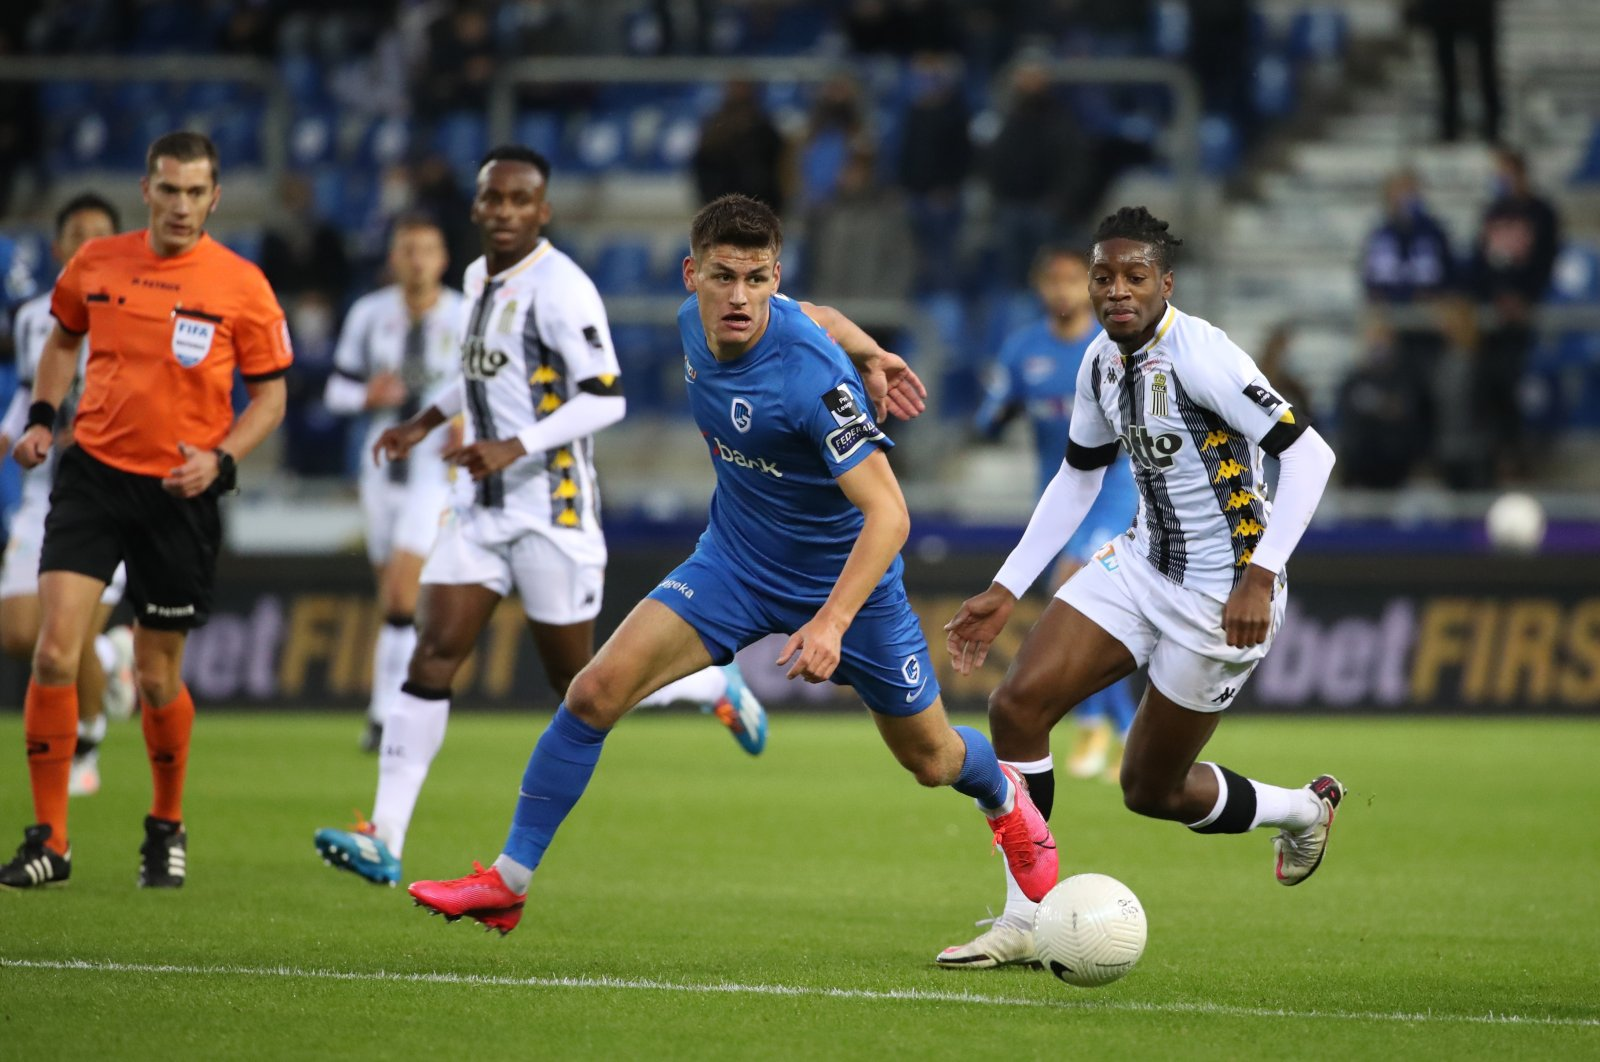 Genk's Joakim Maehle (C) and Sporting de Charleroi's Joris Kayembe (R) in action during a Jupiler Pro League match in Genk, Belgium, Oct. 18, 2020. (Getty Images)